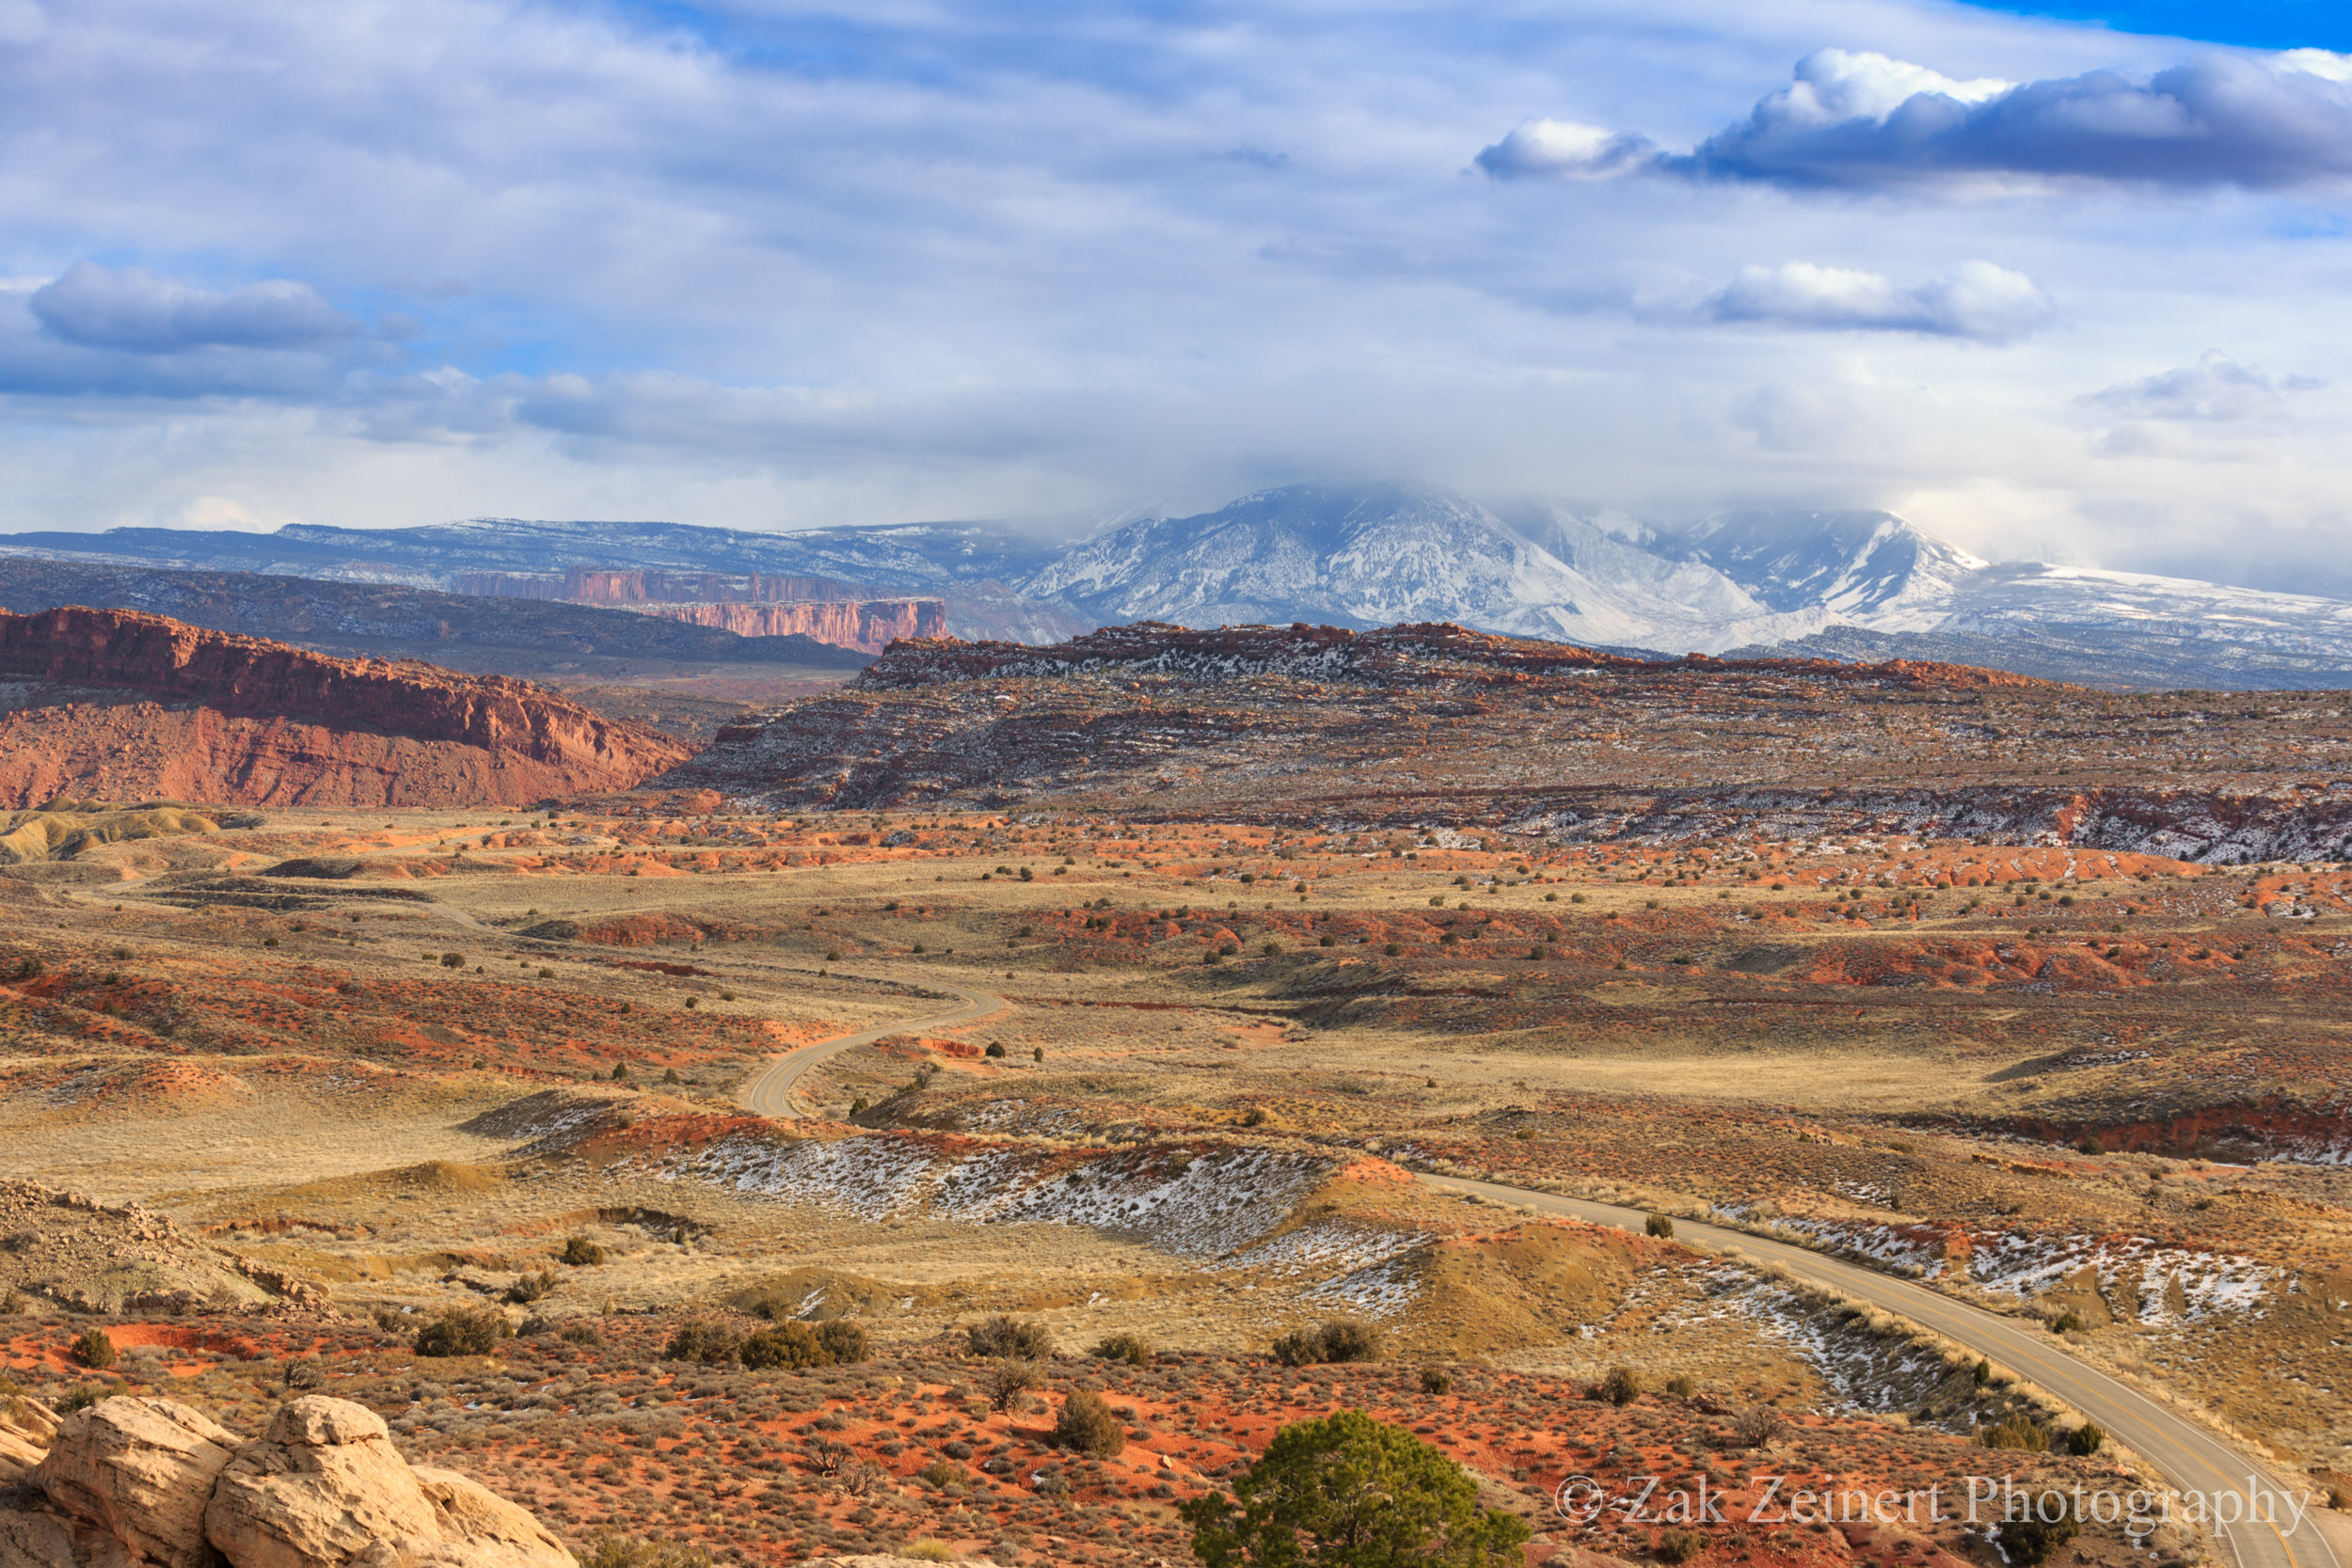 The beautiful state of Utah. Taken while driving around Arches National Park